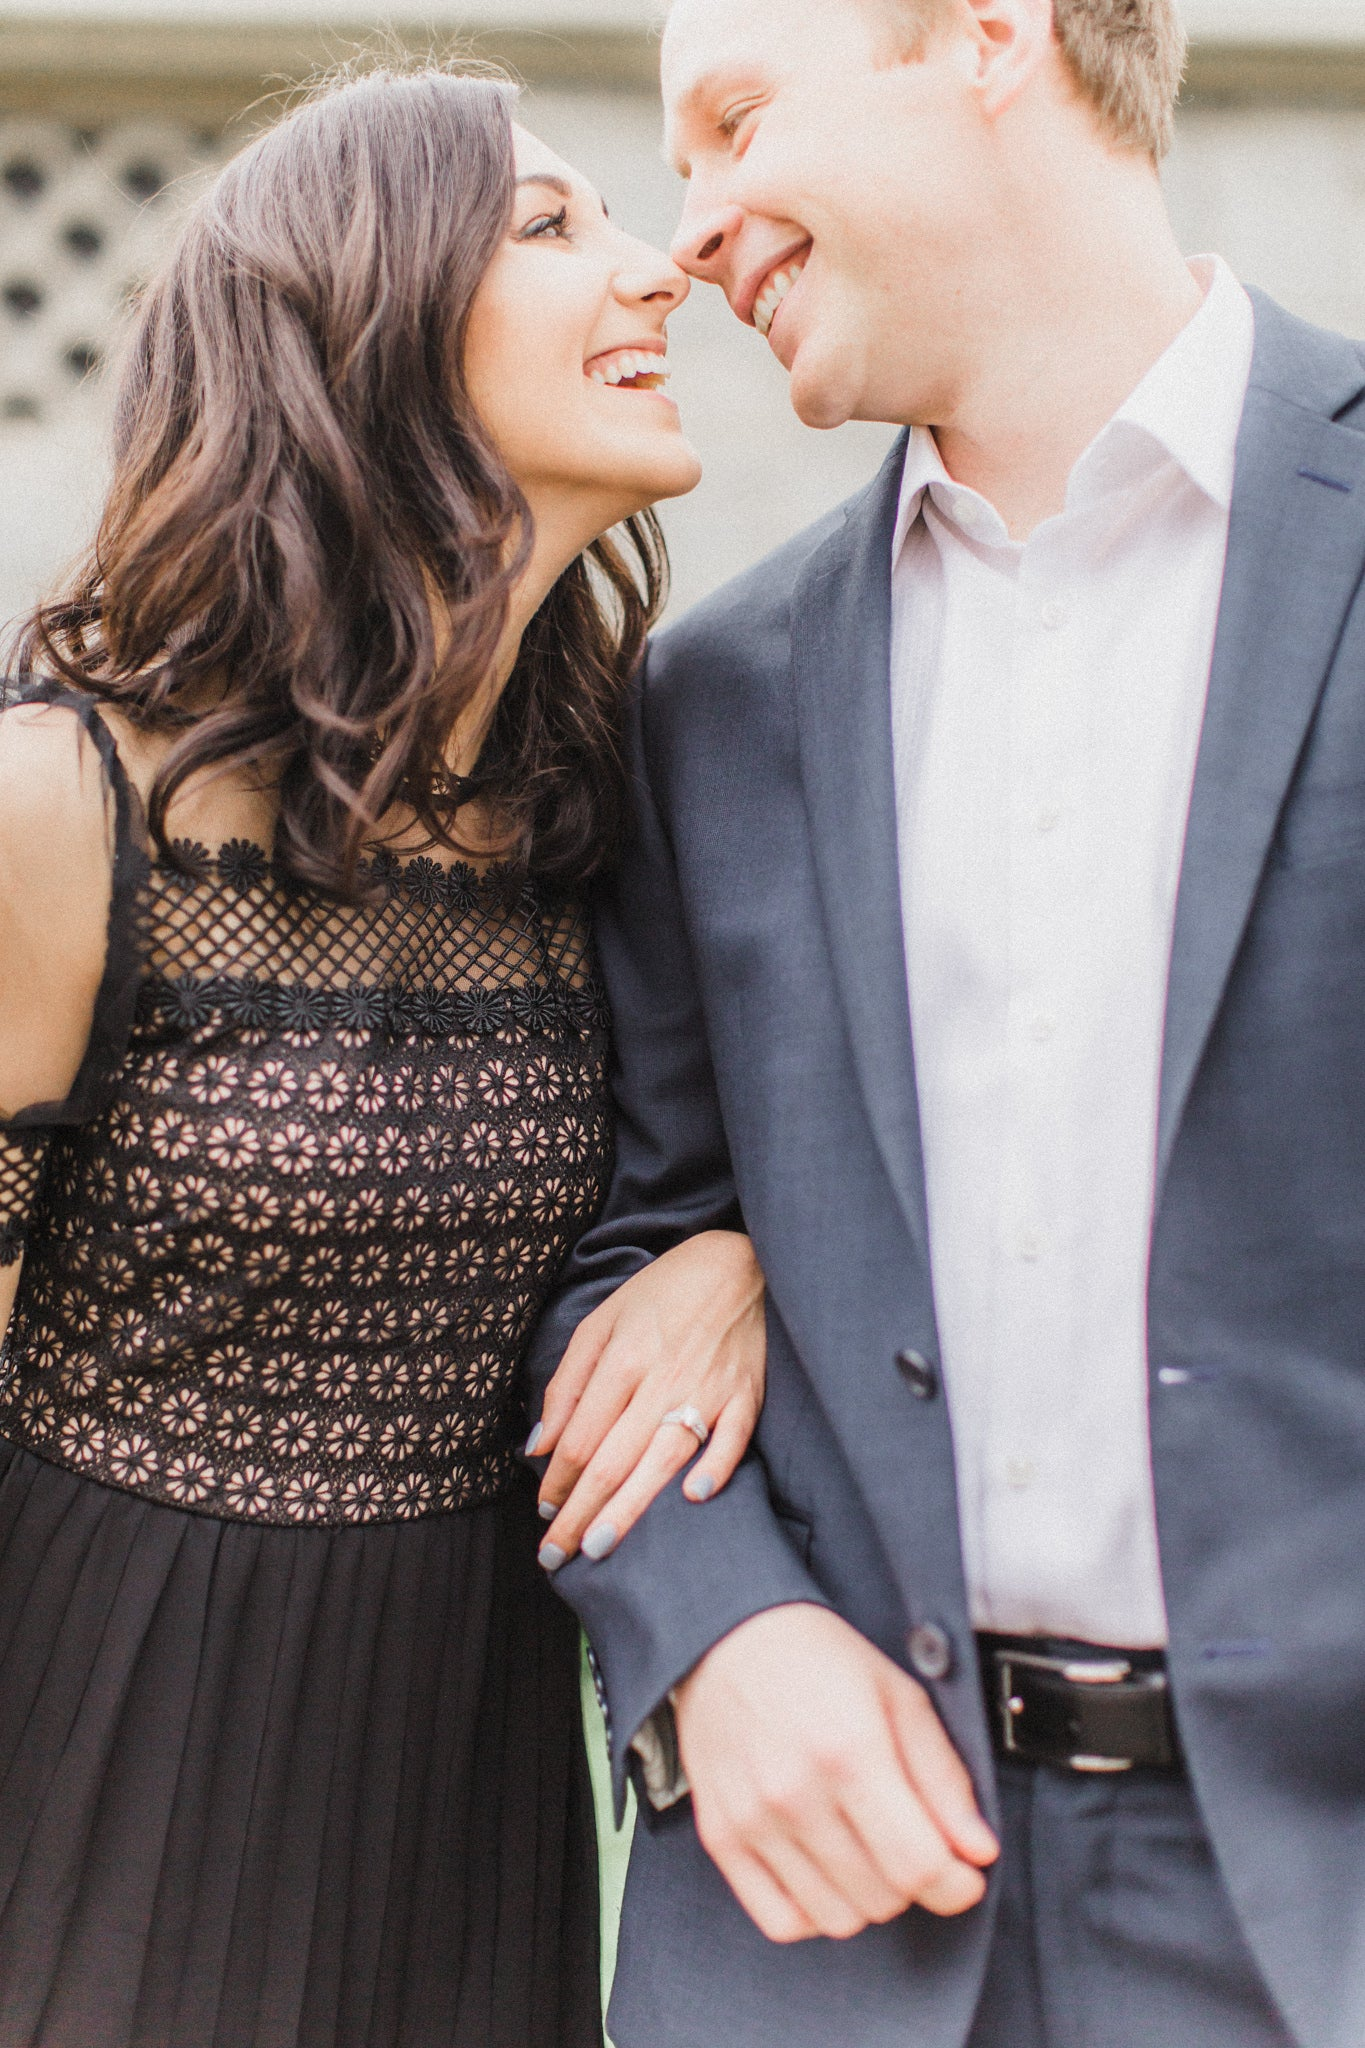 happy bride taking engagement photos with her fiancé featuring her engagement ring